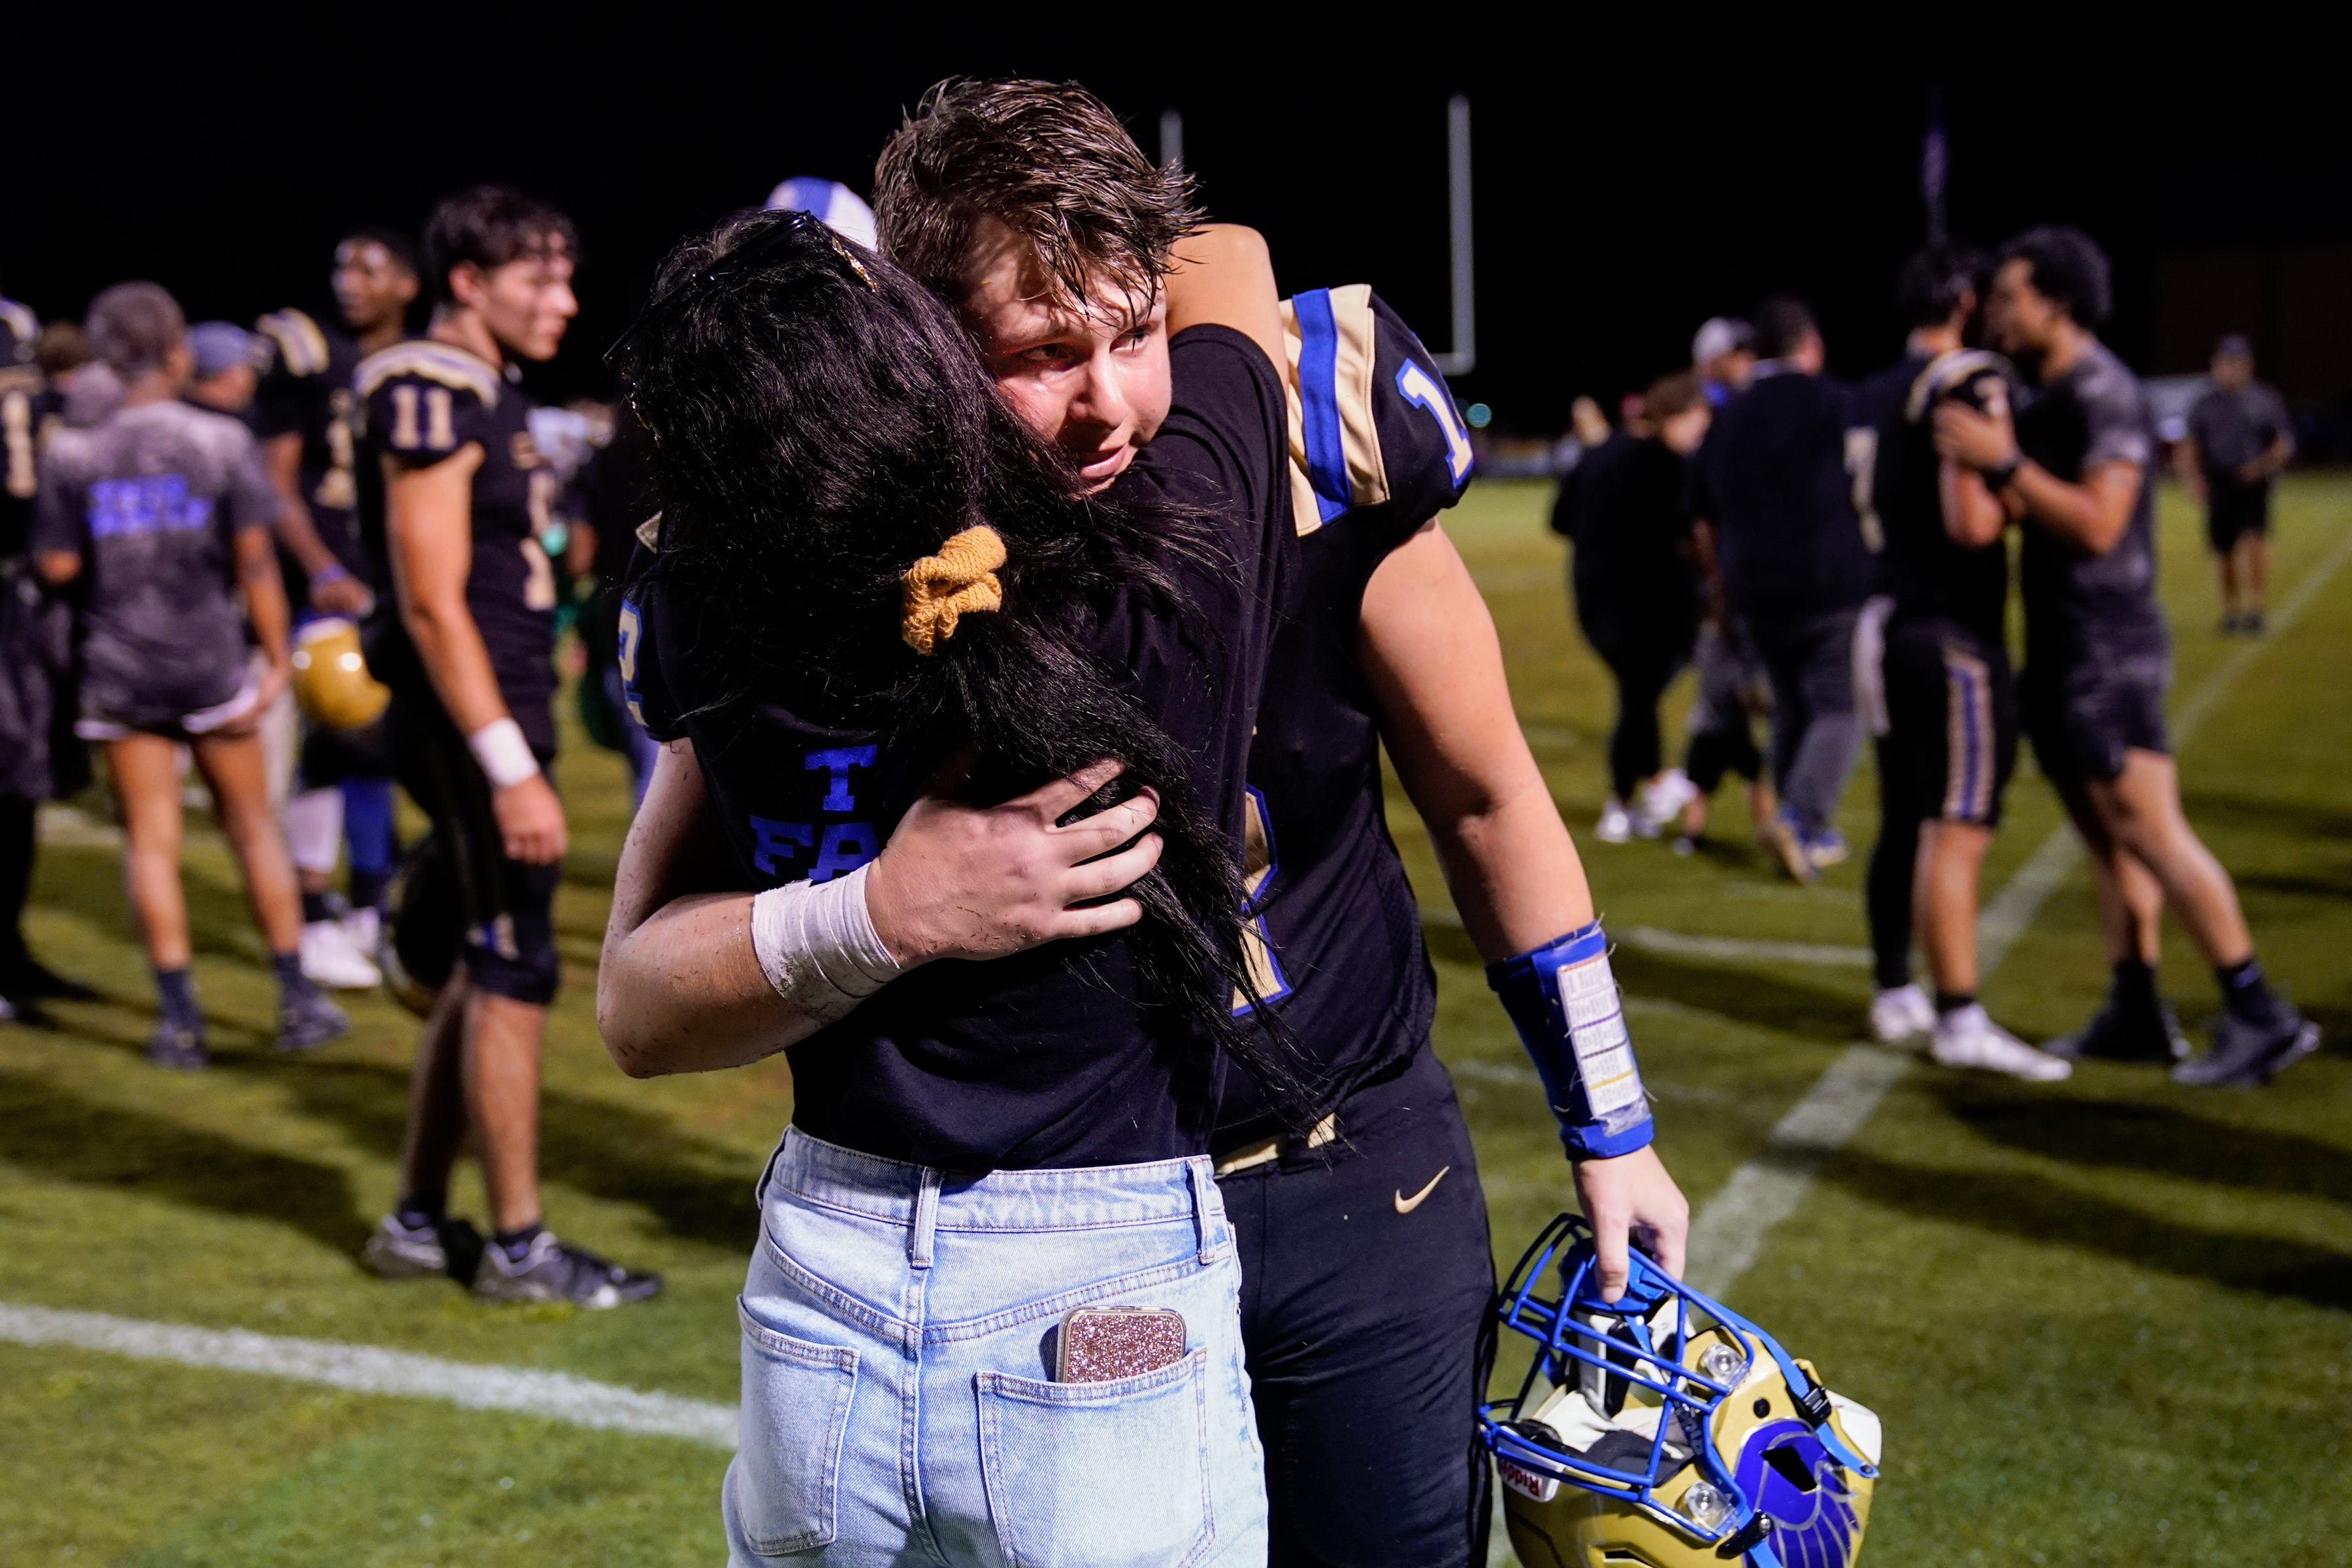 Shelbyville Central's Cayden Puckett (12) greets his girlfriend, Kinley Isbell, after his game against Tullahoma at Shelbyville Central High School in Shelbyville, Tenn., Thursday, Aug. 19, 2021. Puckett returned to the field for the first time on Thursday, eight months after being diagnosed with COVID-19, and about seven months after learning he had myocarditis.